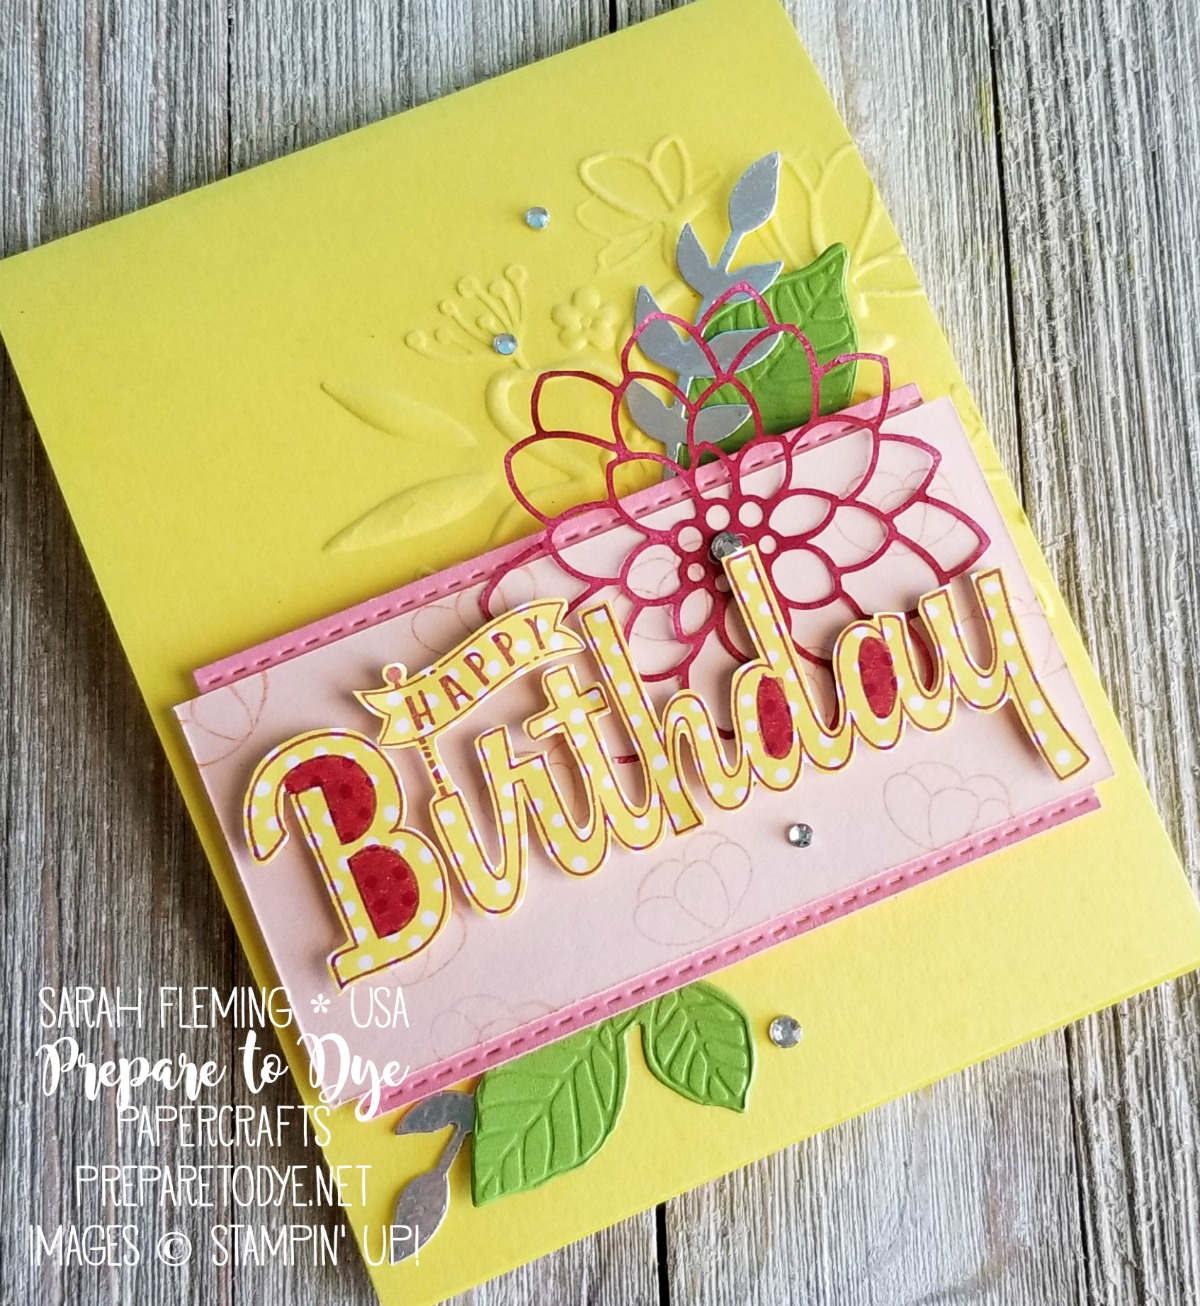 Stampin' Up! Birthday Wishes for You, Cake Soiree, Lovely Floral embossing folder, Nature's Roots framelits, Stitched Labels framelits, Bouquet Bunch framelits, Delightfully Detailed paper - Sarah Fleming - Prepare to Dye Papercrafts